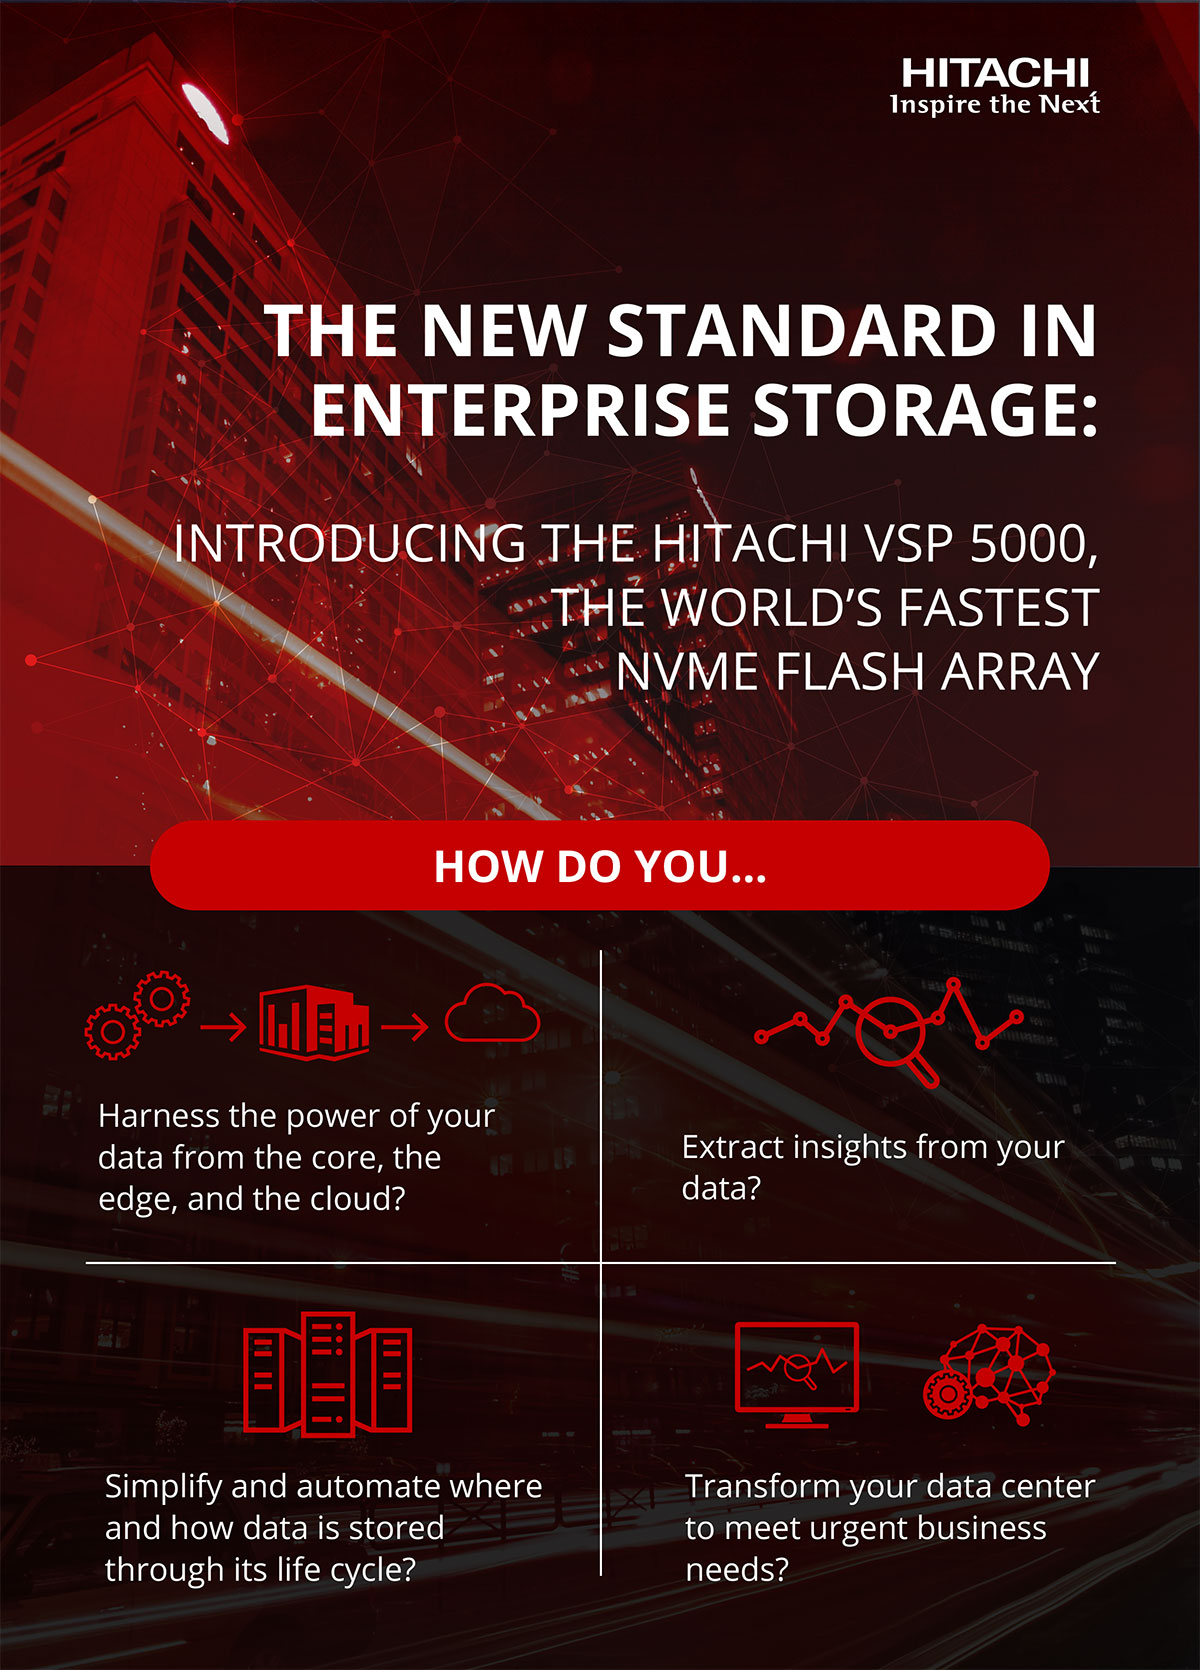 The New Standard in Enterprise Storage